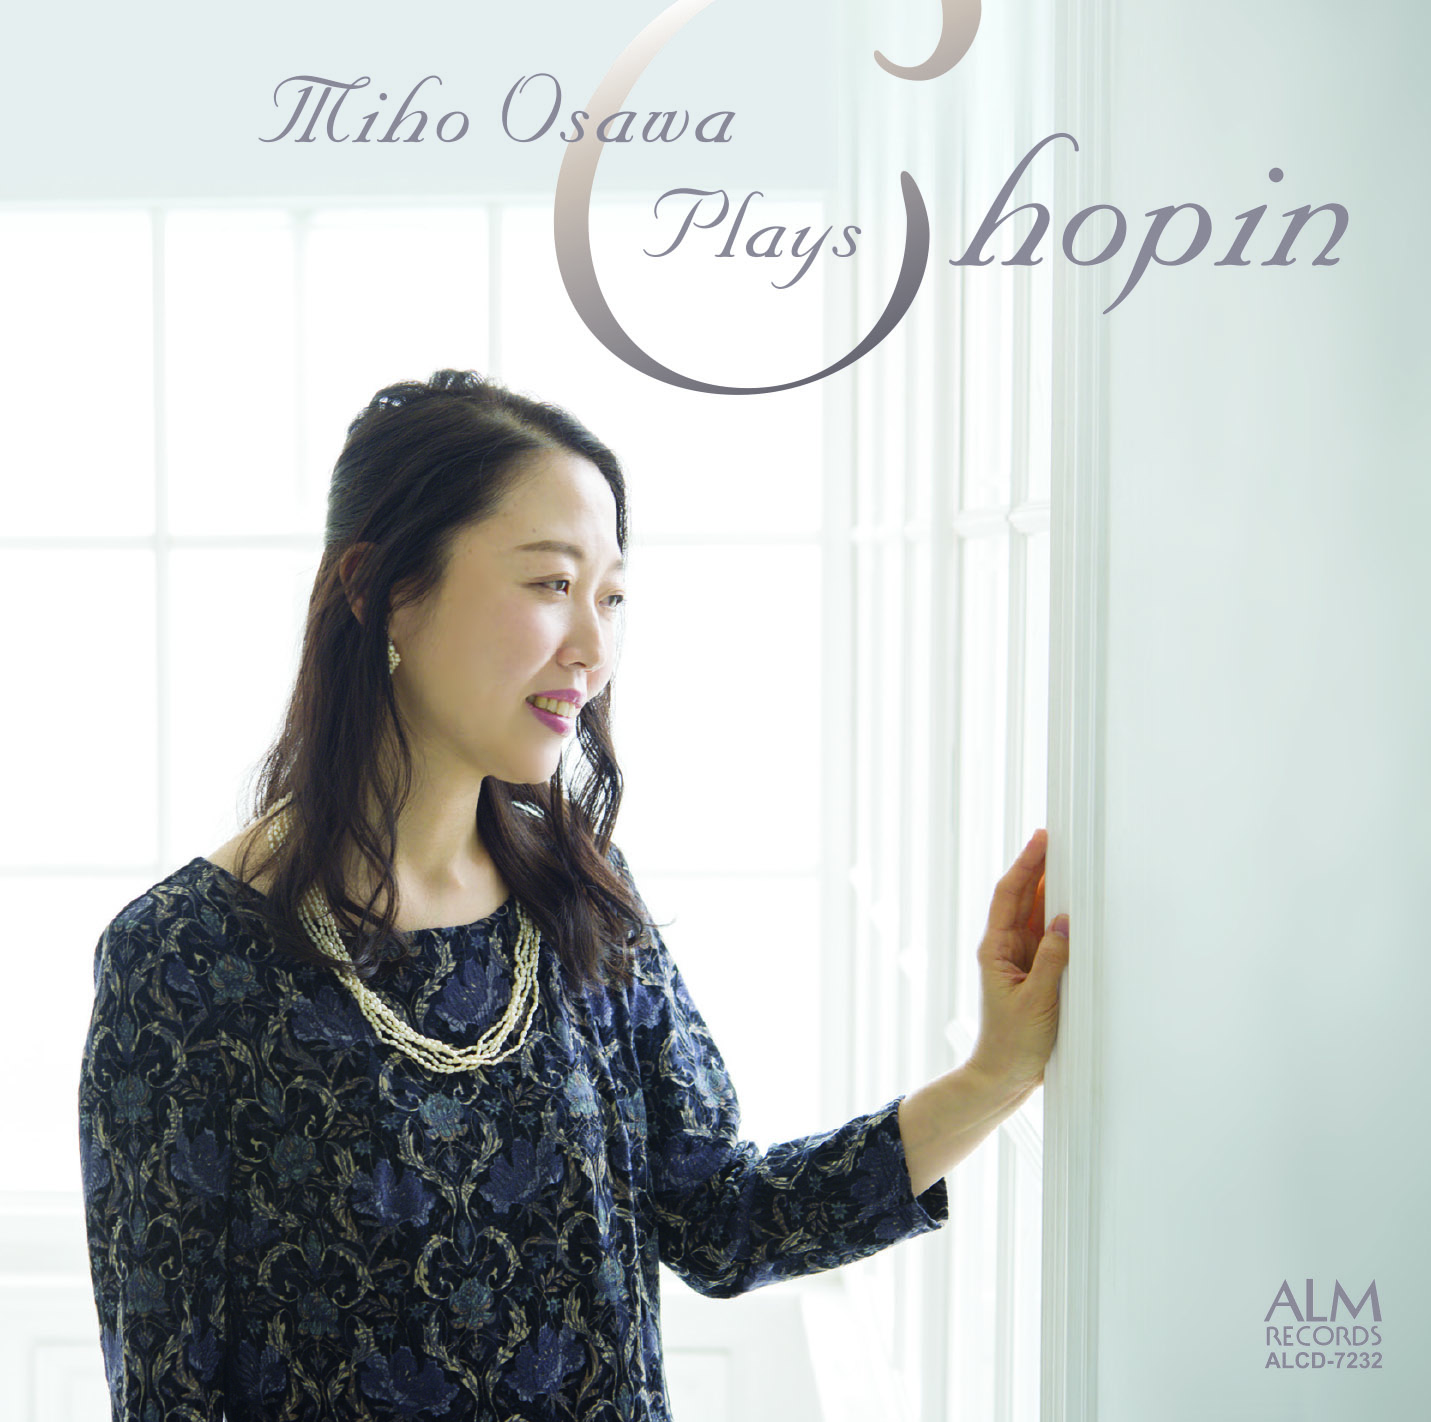 Miho Osaswa | Plays Chopin